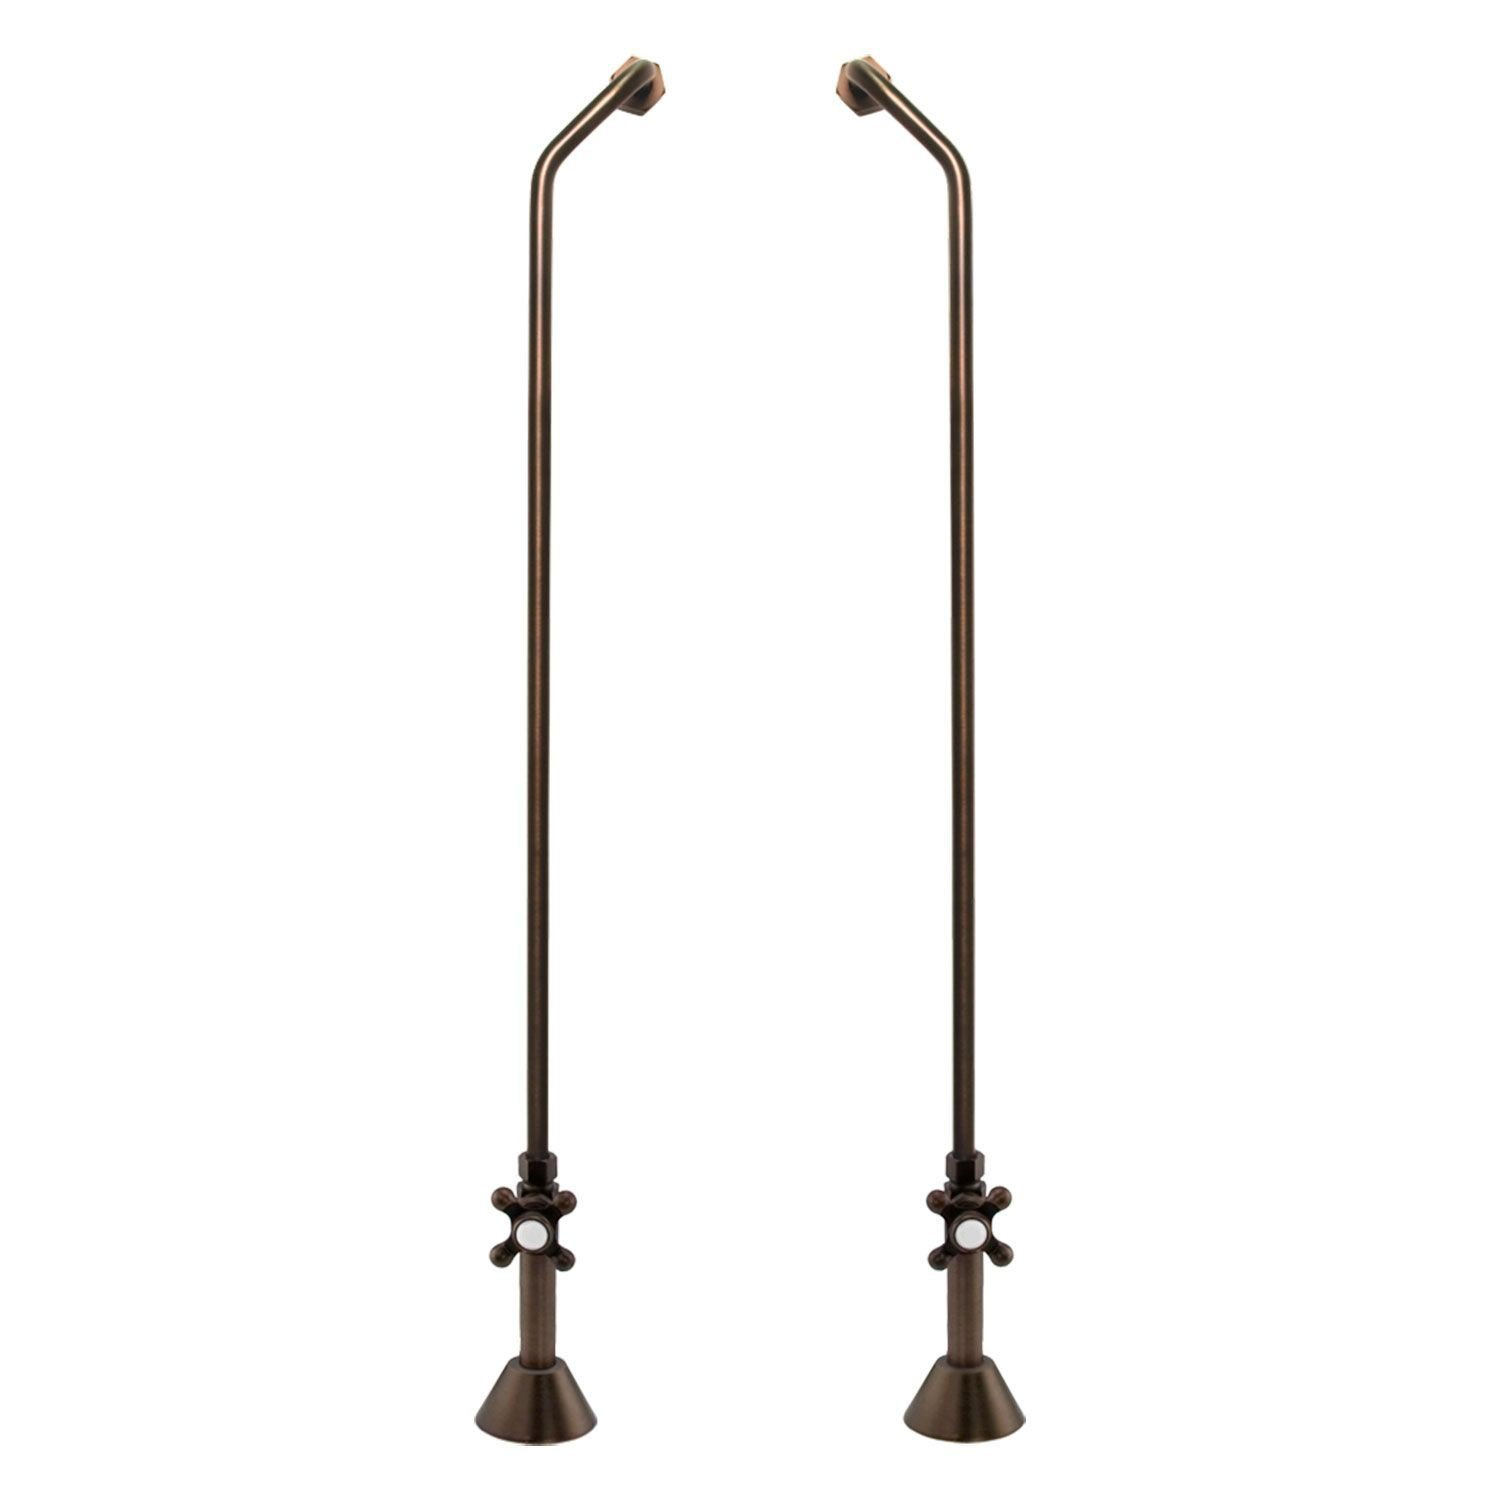 Double Offset Tub Supplies With Valves - Fits Copper Pipe - in Oil Rubbed Bronze Finish by SH